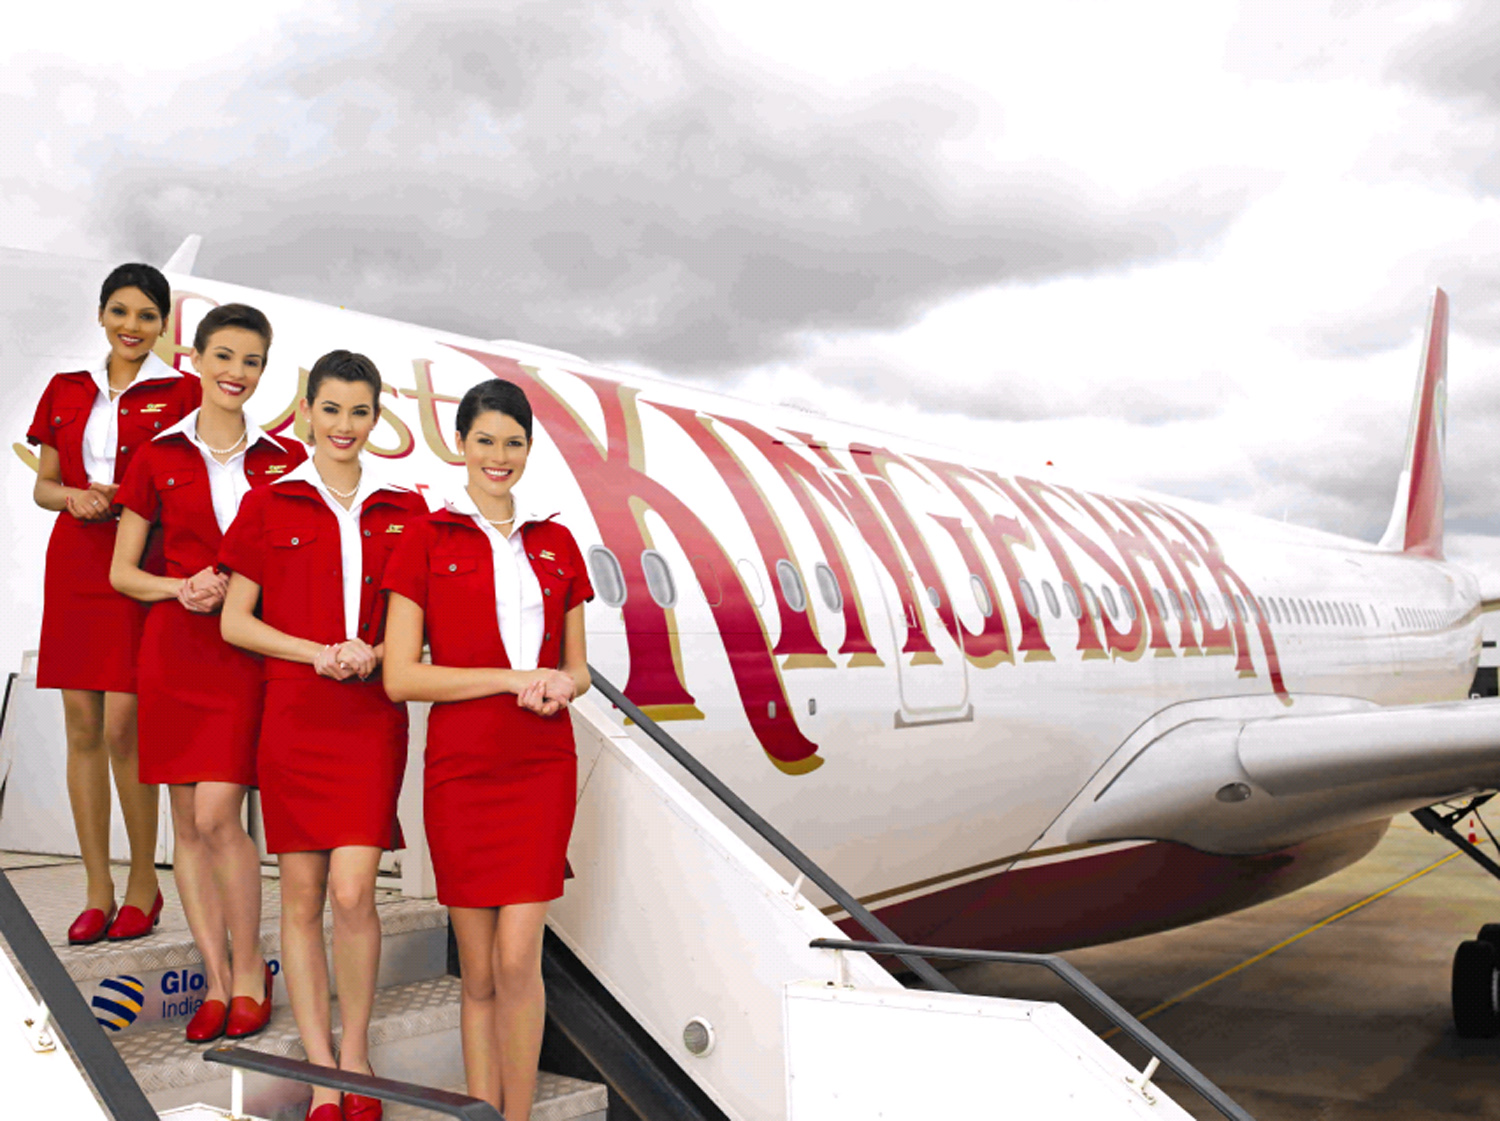 kingfisher airlines porters five model View notes - airlineindustry7ps-141114012801-conversion-gate01 from marketing 526 at university of dhaka airlines industry kingfisher airlines group members flow of presentation overview of the.